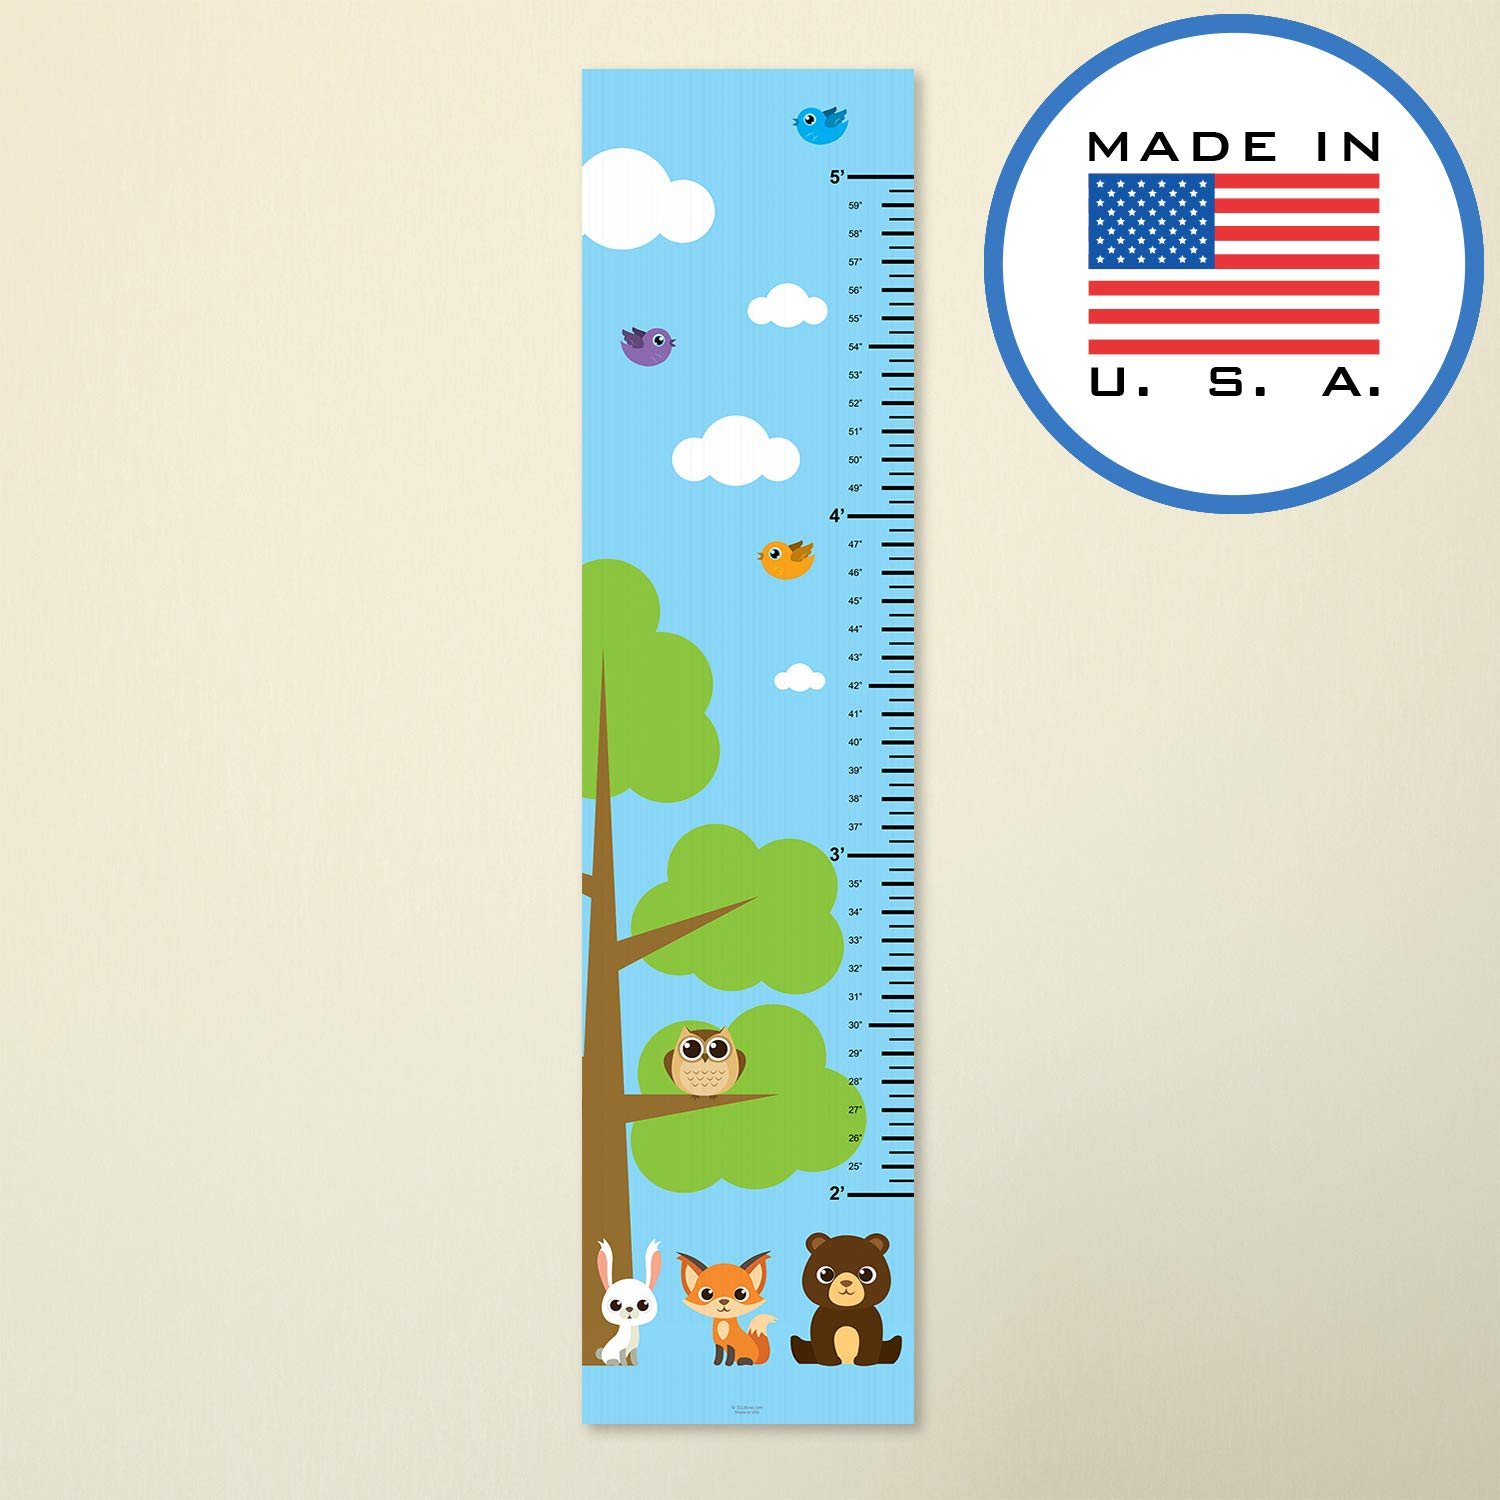 321Done Growth Chart Woodland Forest Animals with Tree Fox Owl Rabbit Bear, Kids Hanging Height Ruler Vinyl Banner, Nursery Wall Decor, Blue Sky NPGC1001-A